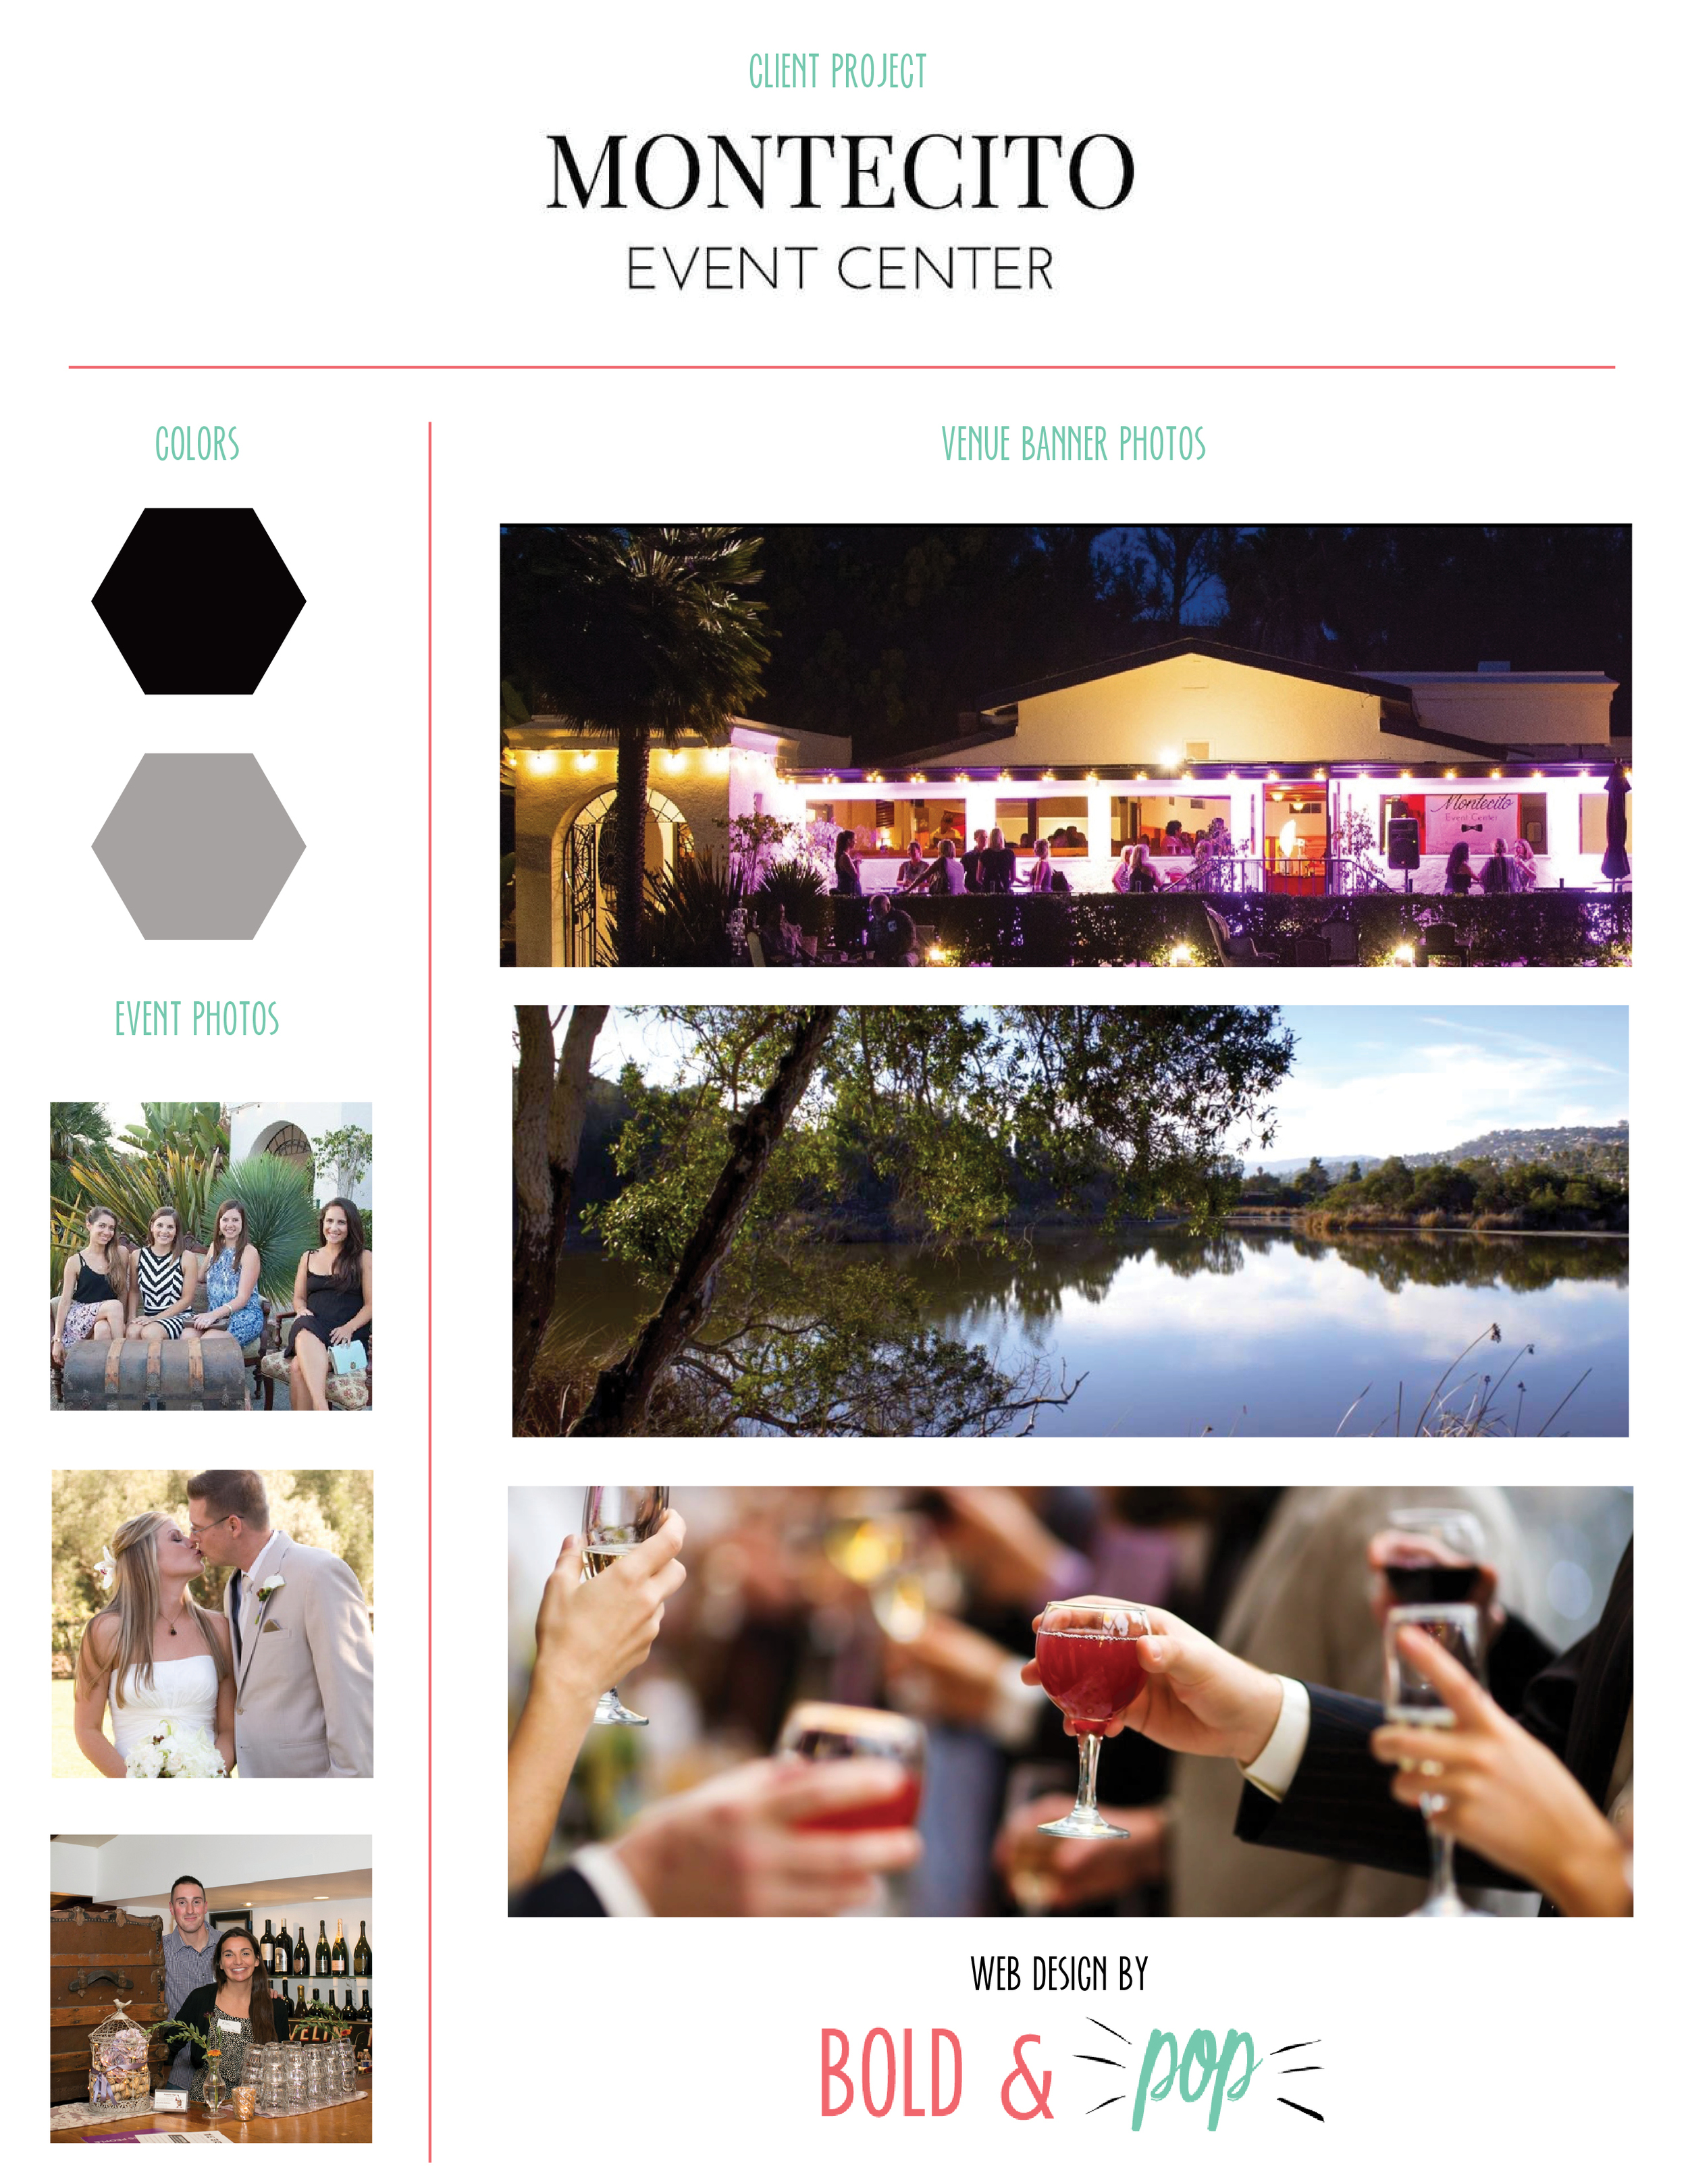 Bold & Pop : Montecito Event Center Website Refresh